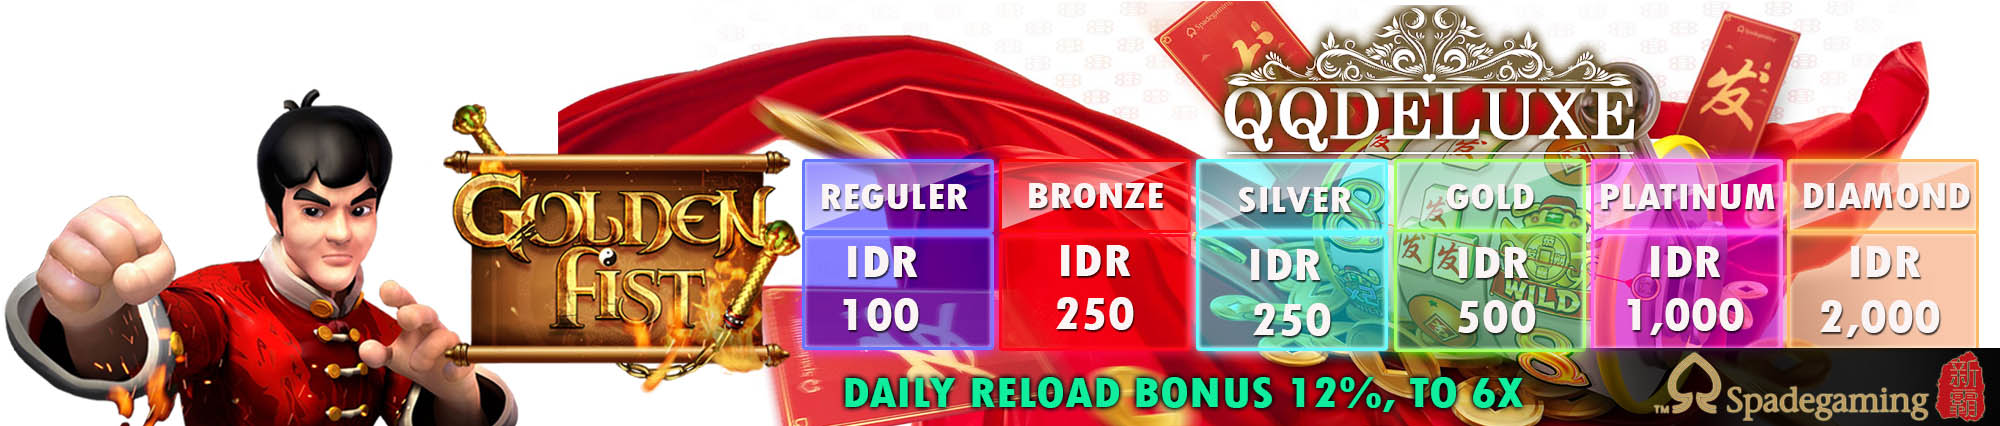 games slot QQdeluxe